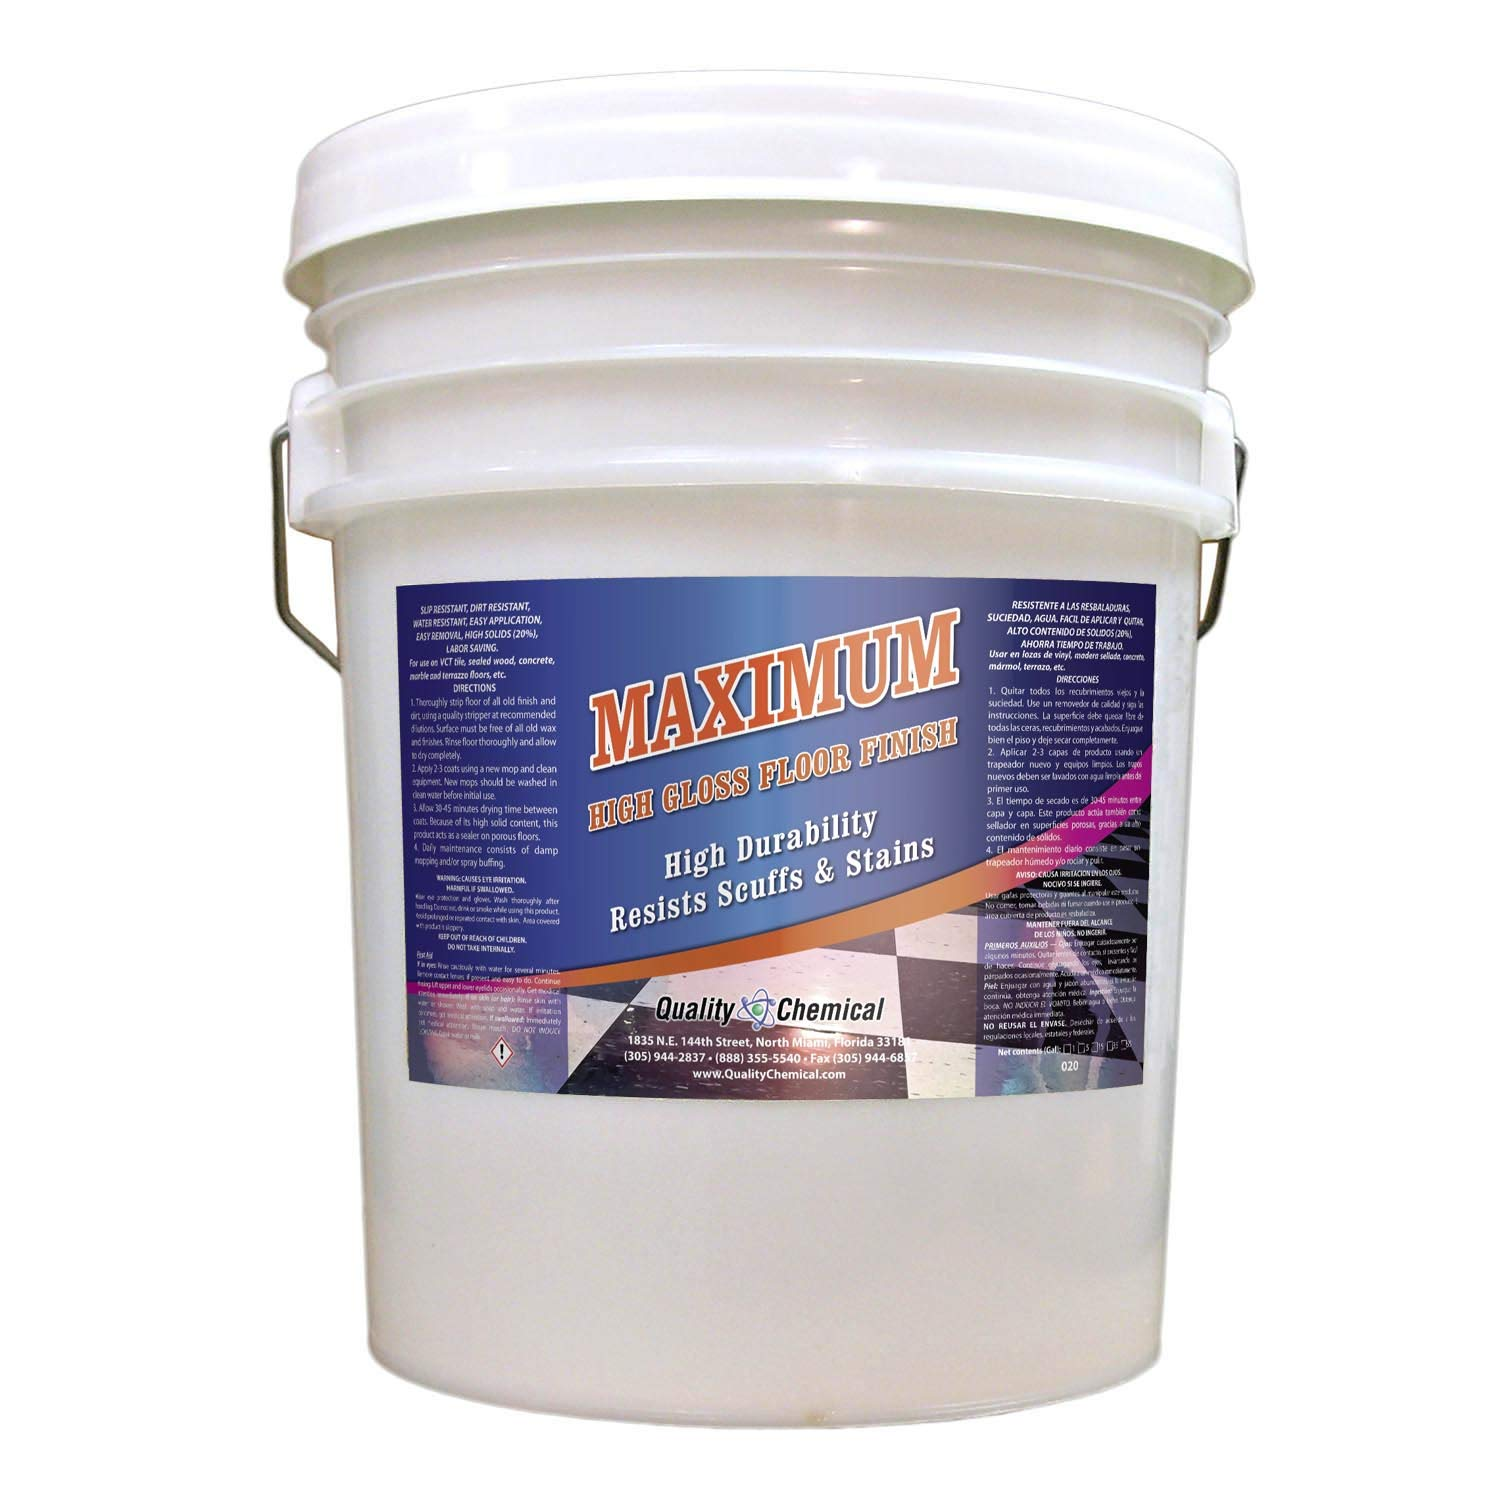 Maximum High Solids Commercial Wax Floor and Max 72% OFF Max 50% OFF Shine Finish-5